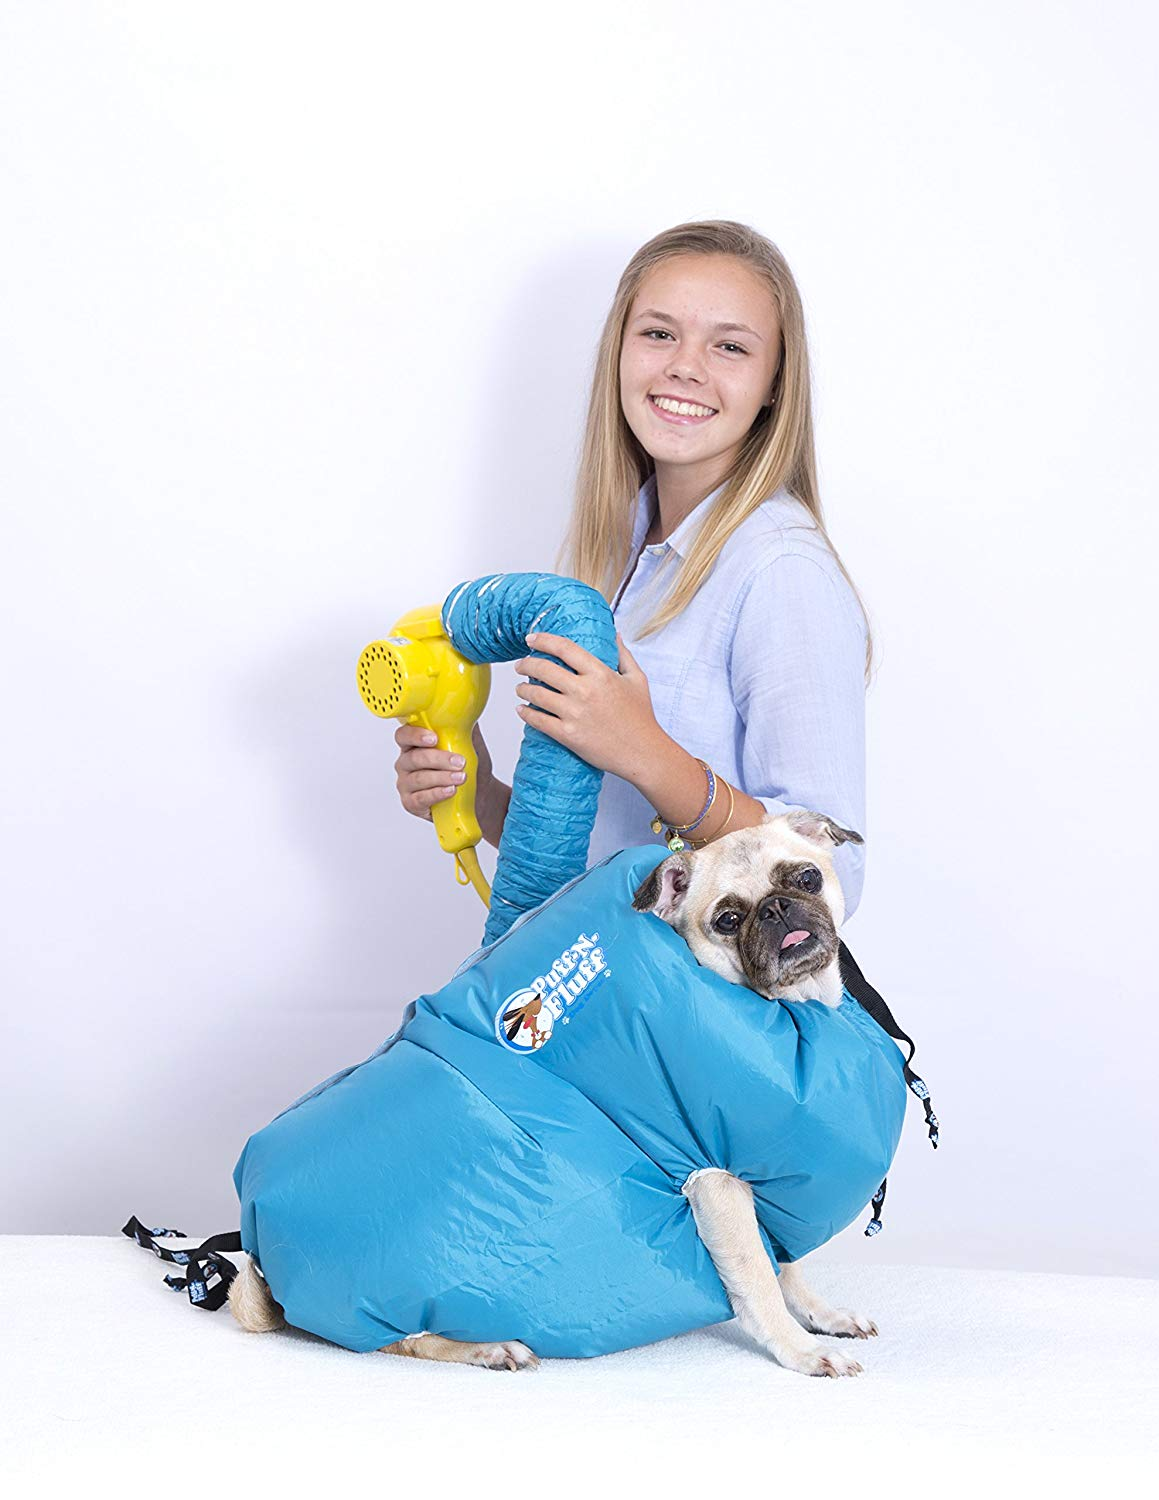 A Blow-Drying Dog Suit - $69.95